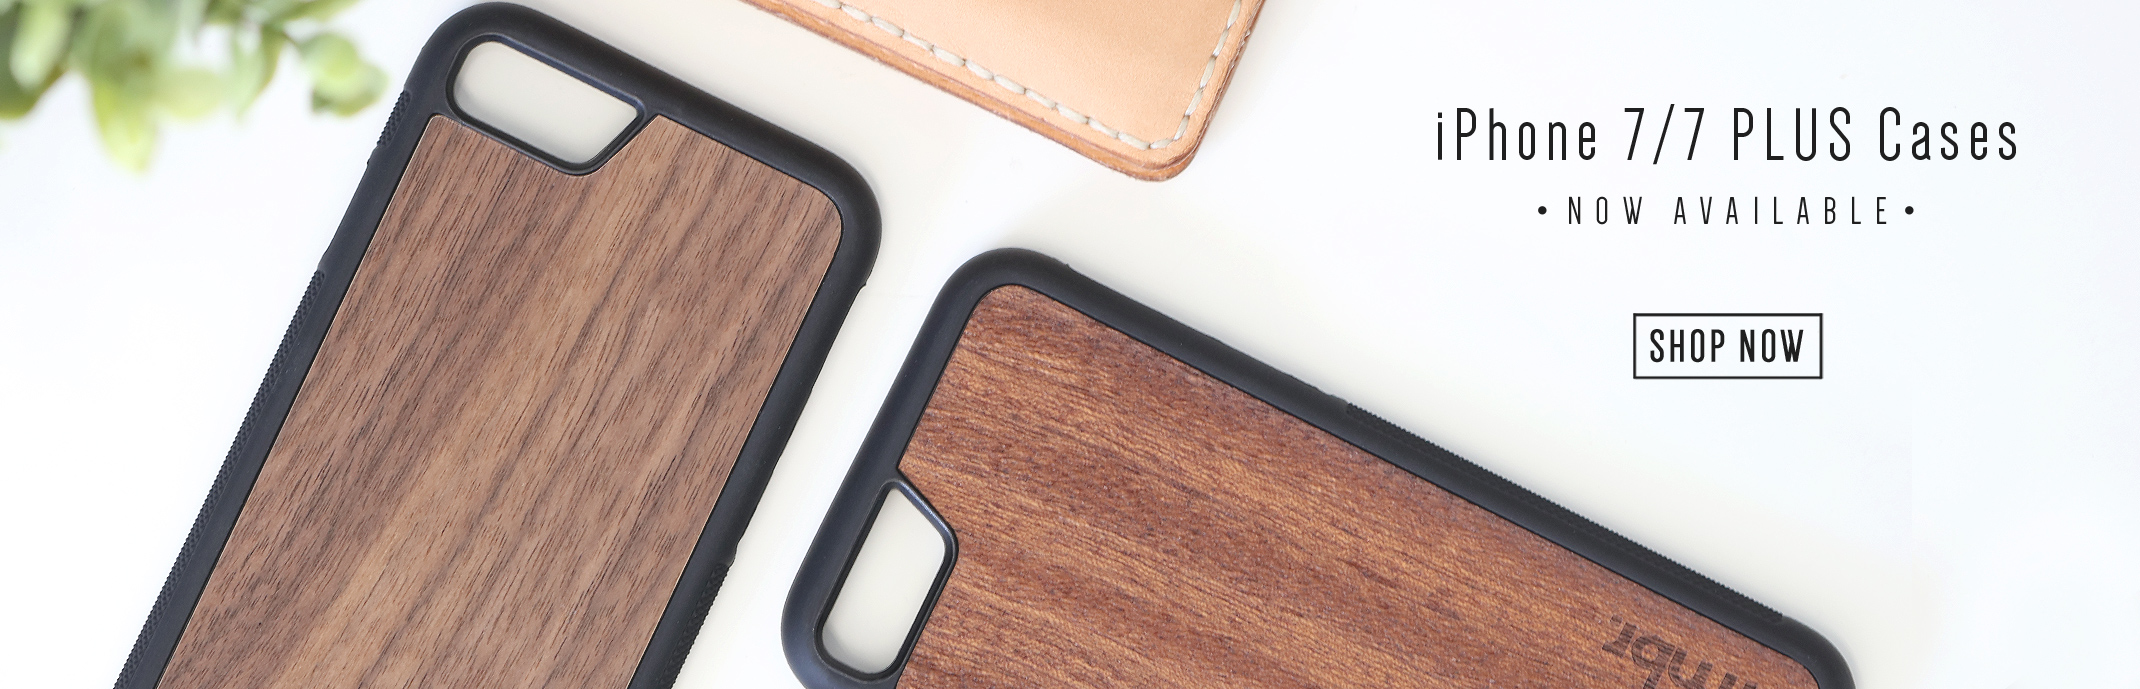 Wood iPhone 7 and iPhone 7 Plus Cases